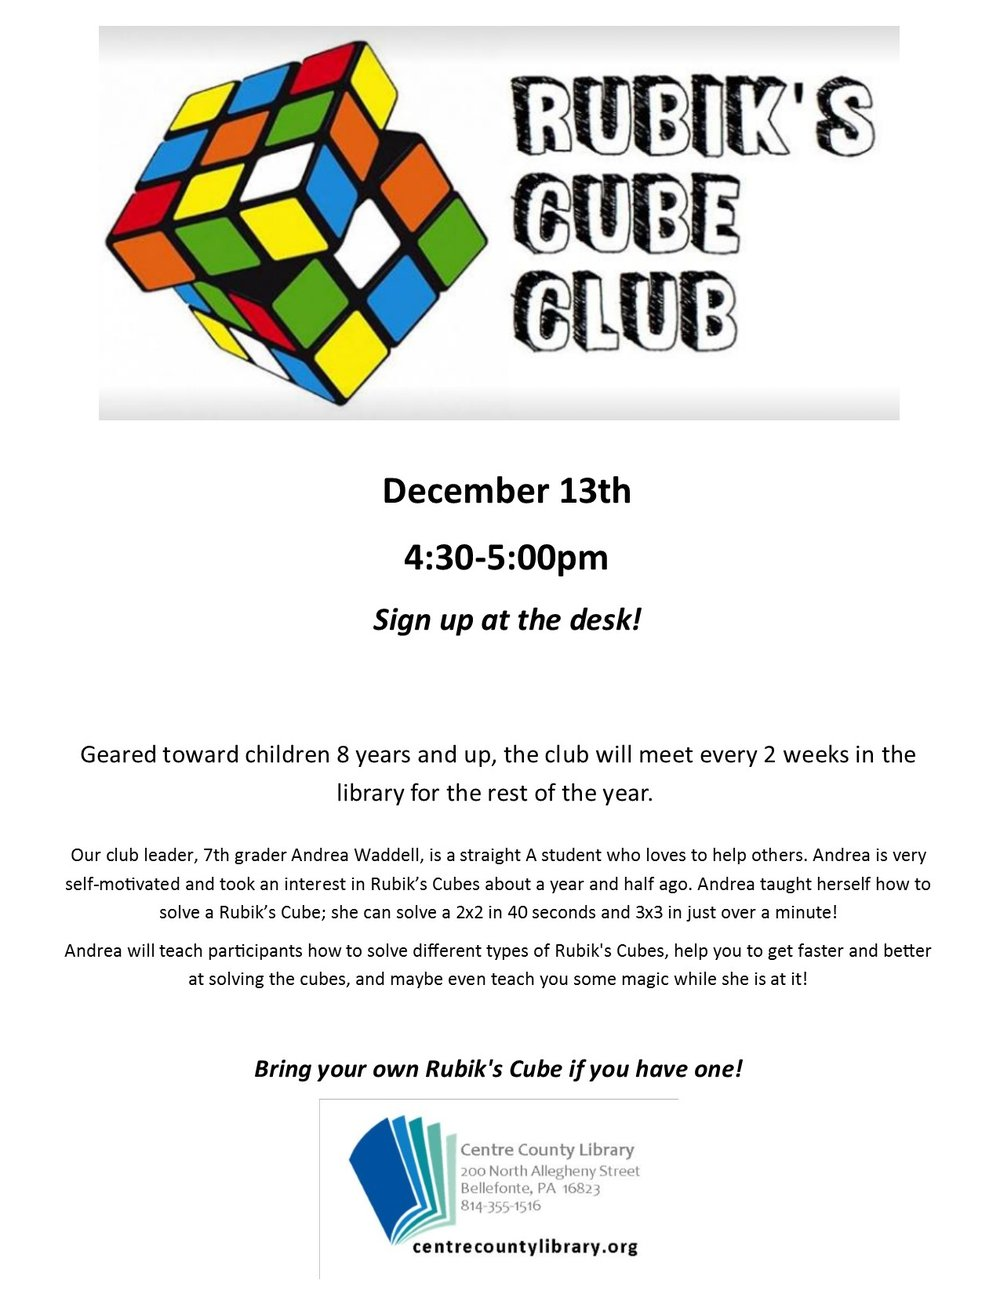 rubiks cube club december.jpg